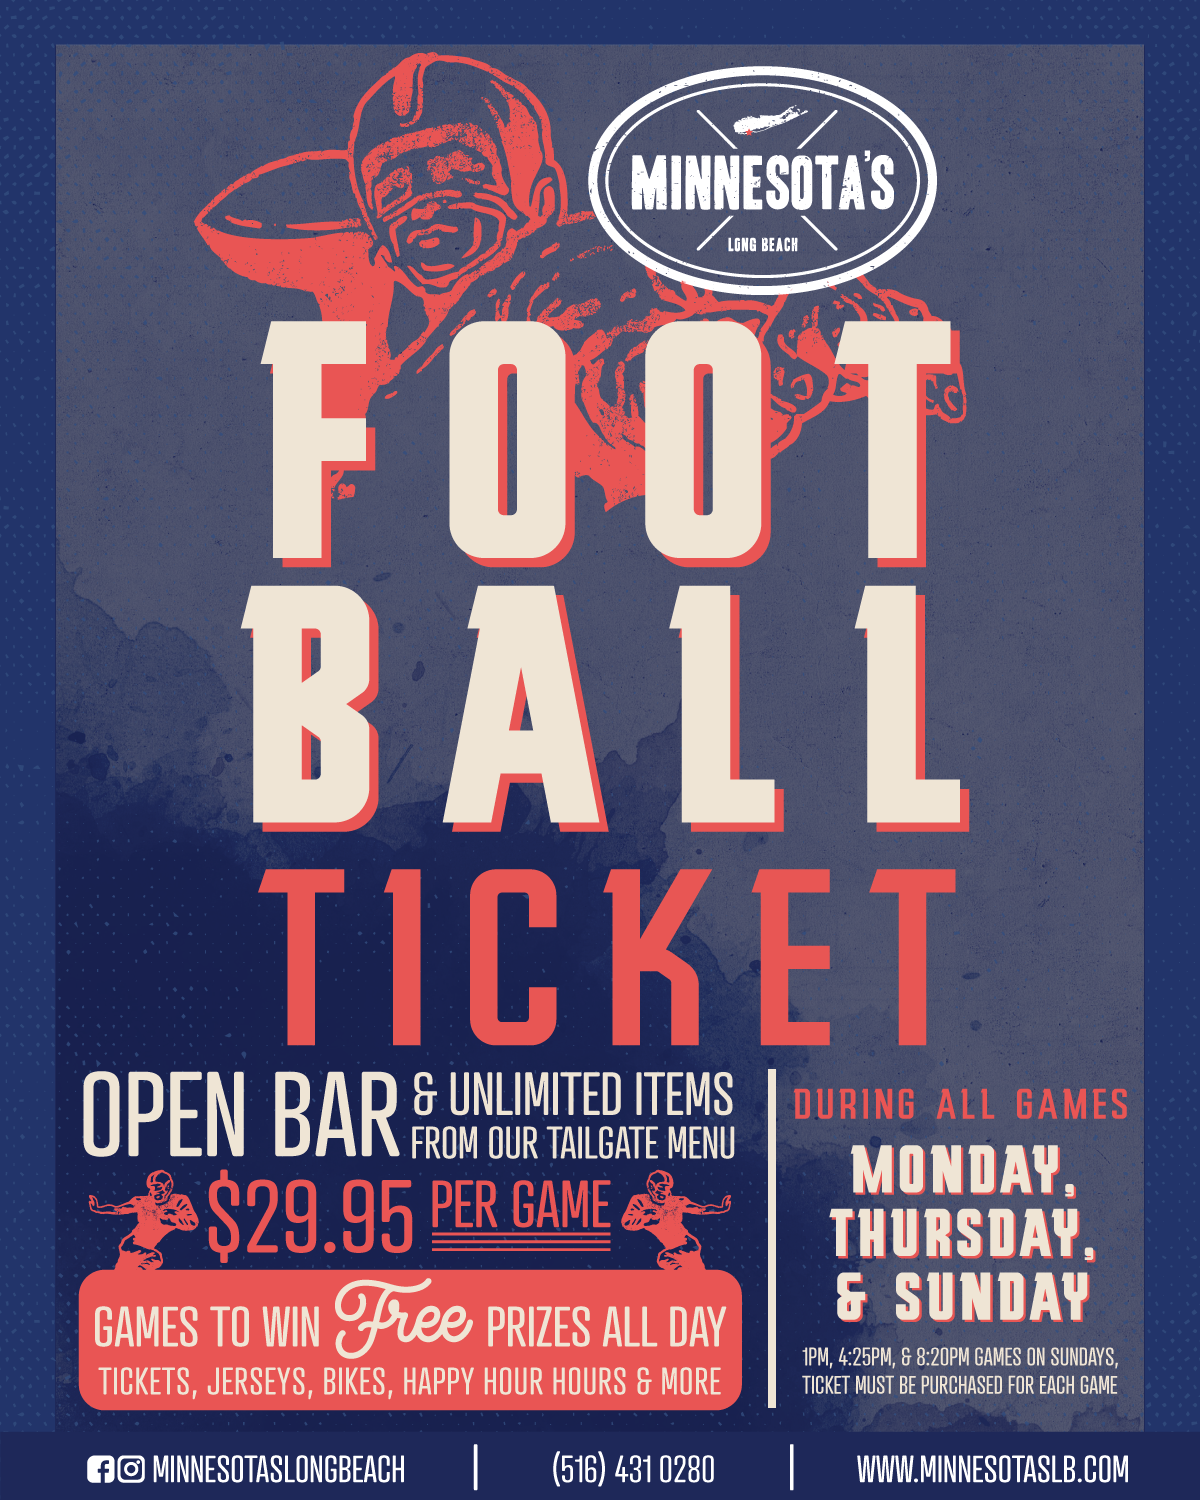 Flyer for our Minnesota's Football Ticket. Enjoy an open bar and unlimited items from our Tailgate Menu for $29,95! Special runs during all games Monday, Thursday, and Sunday. Ticket must be purchased for each game.  Call us at (516) 431-0280 for details!